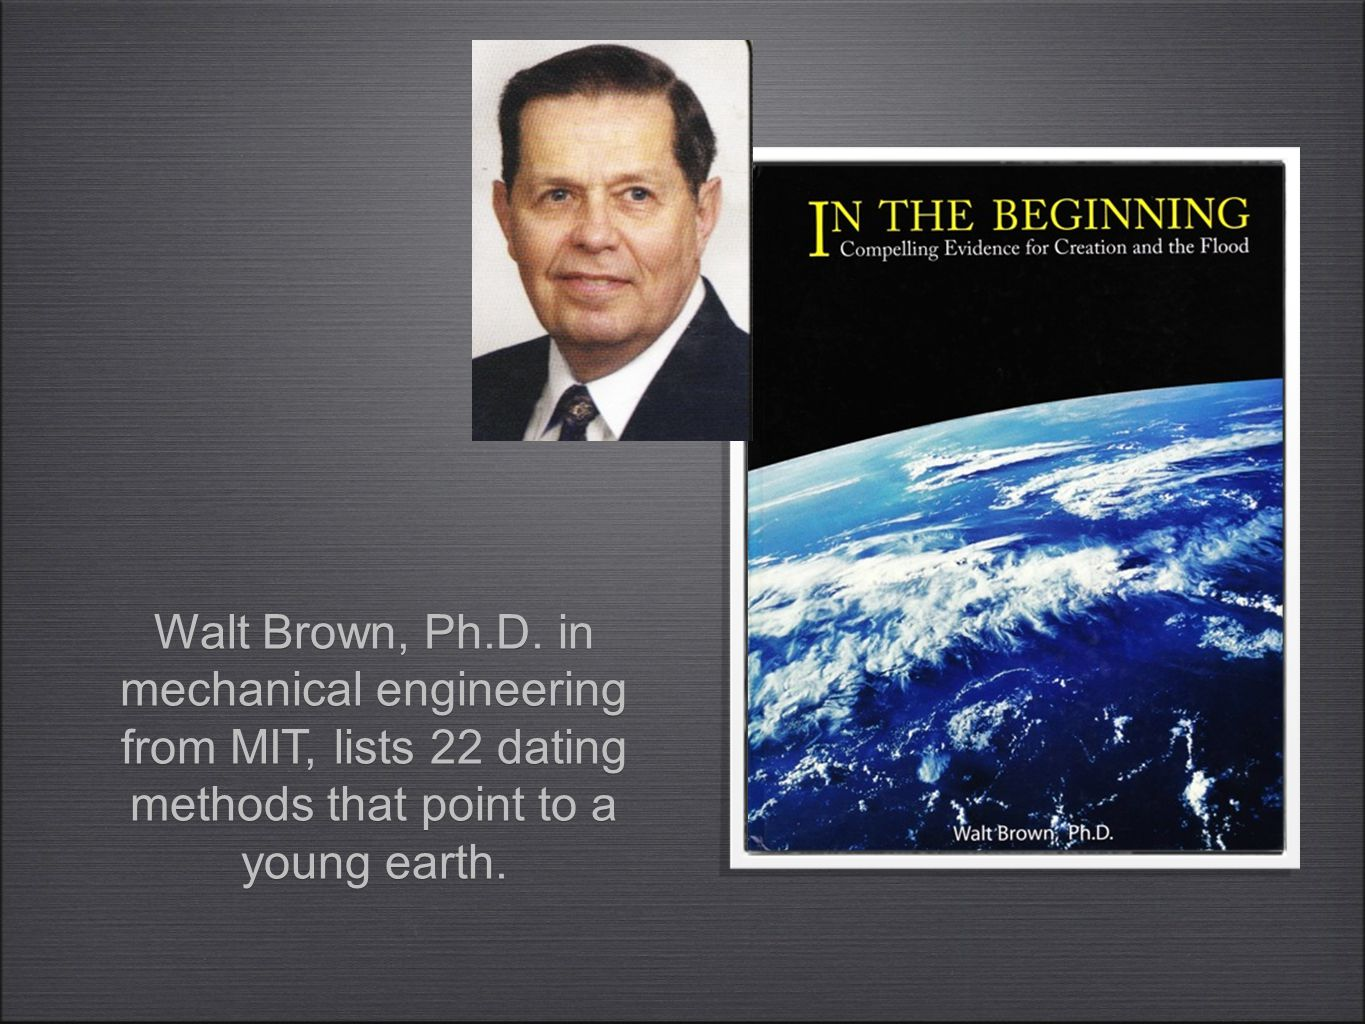 Walt Brown, Ph.D.